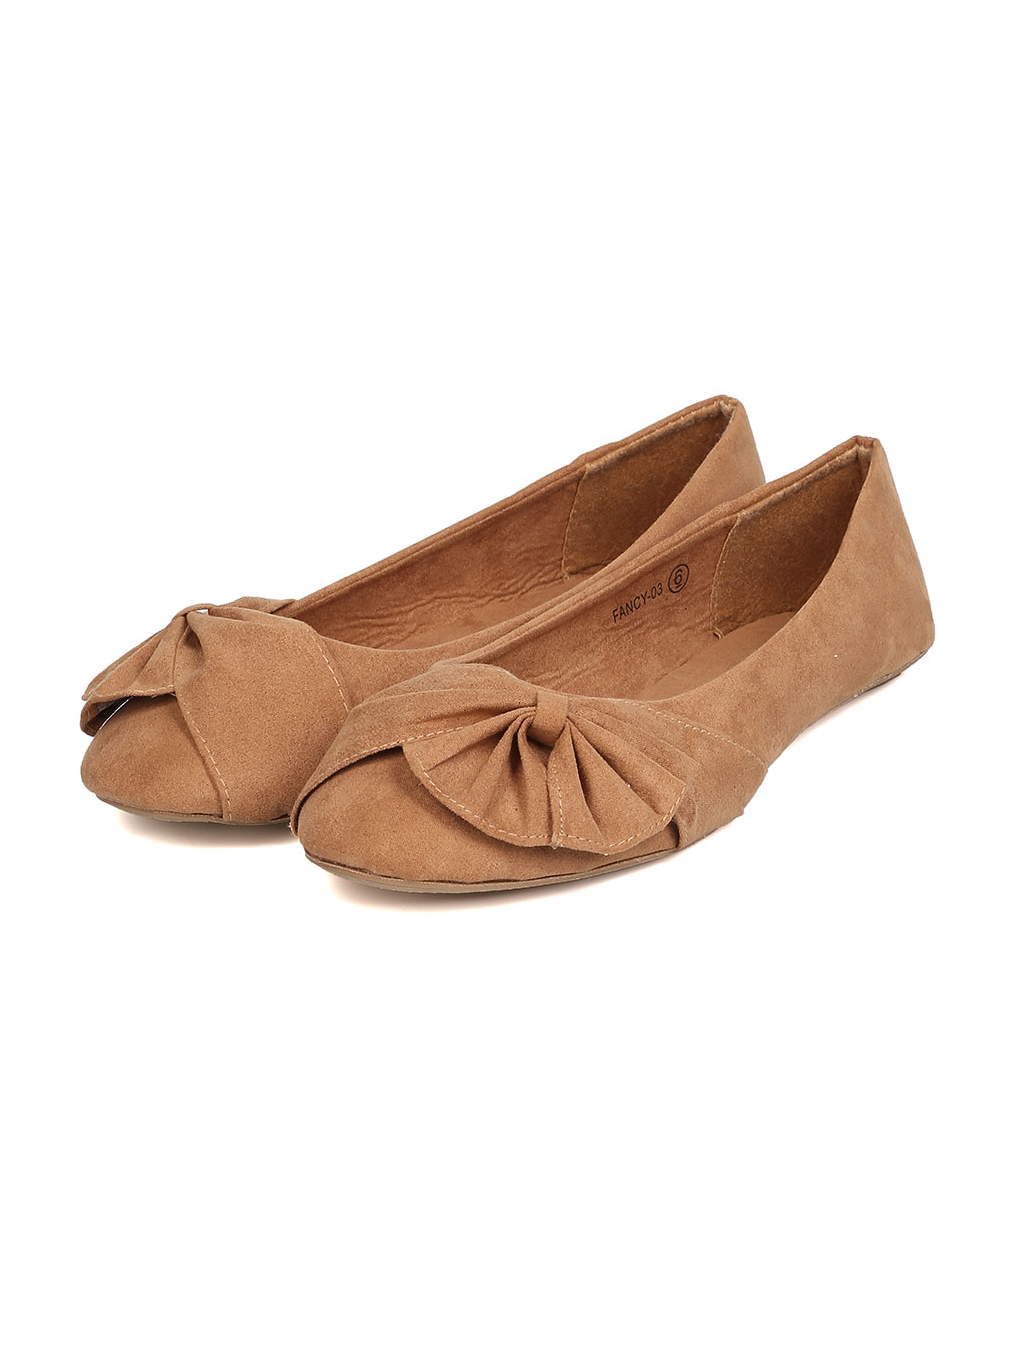 New Women Refresh Fancy-03 Faux Suede Ruched Bow Ballet Flat